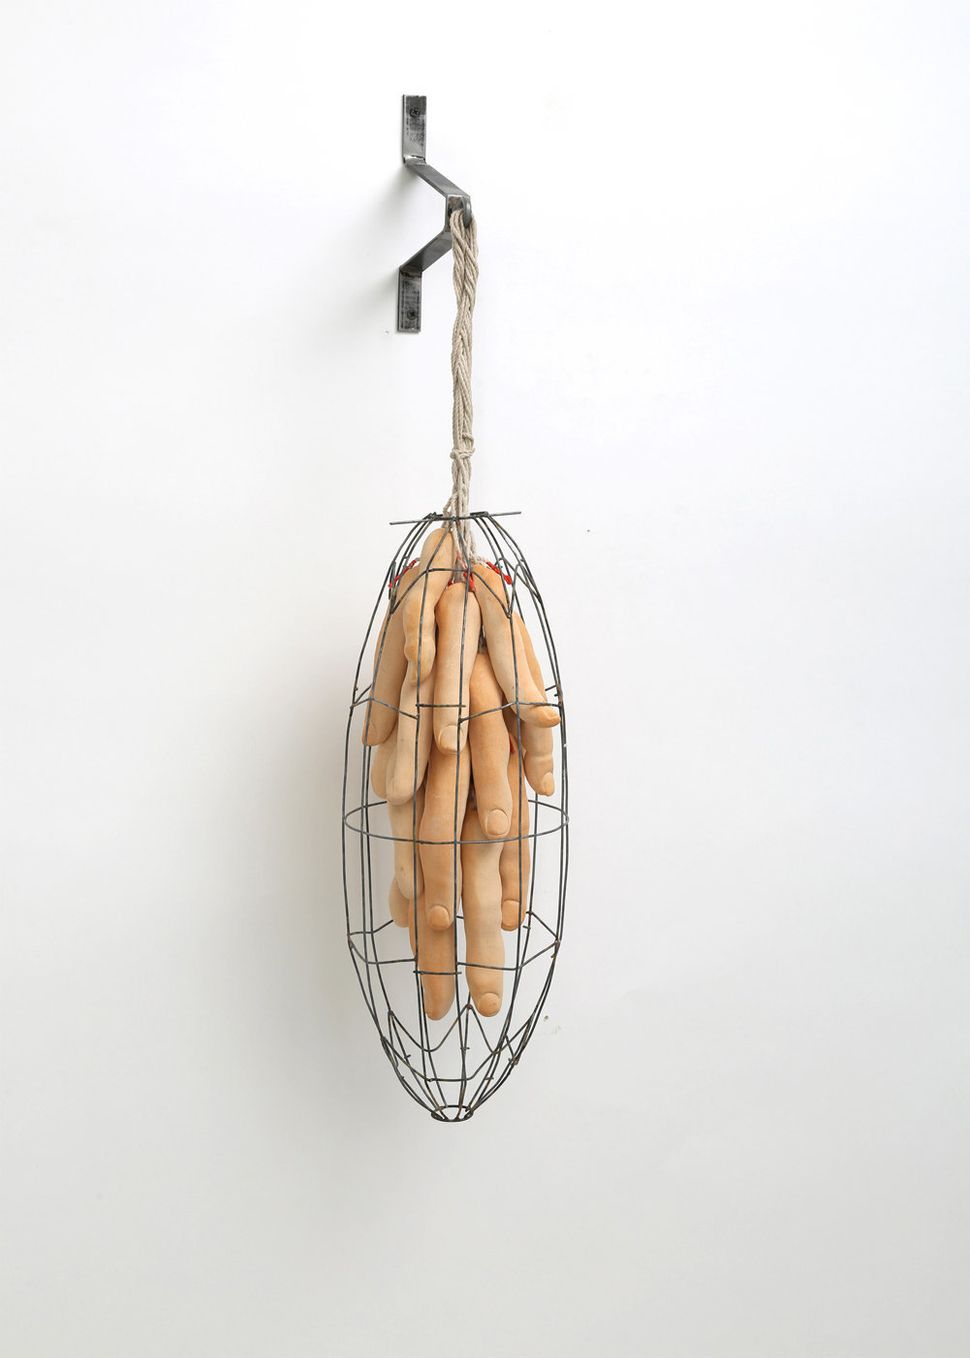 There Is No Queen In This Hive, 2014, 35 x 10 x 8, Steel, ceramic, rope